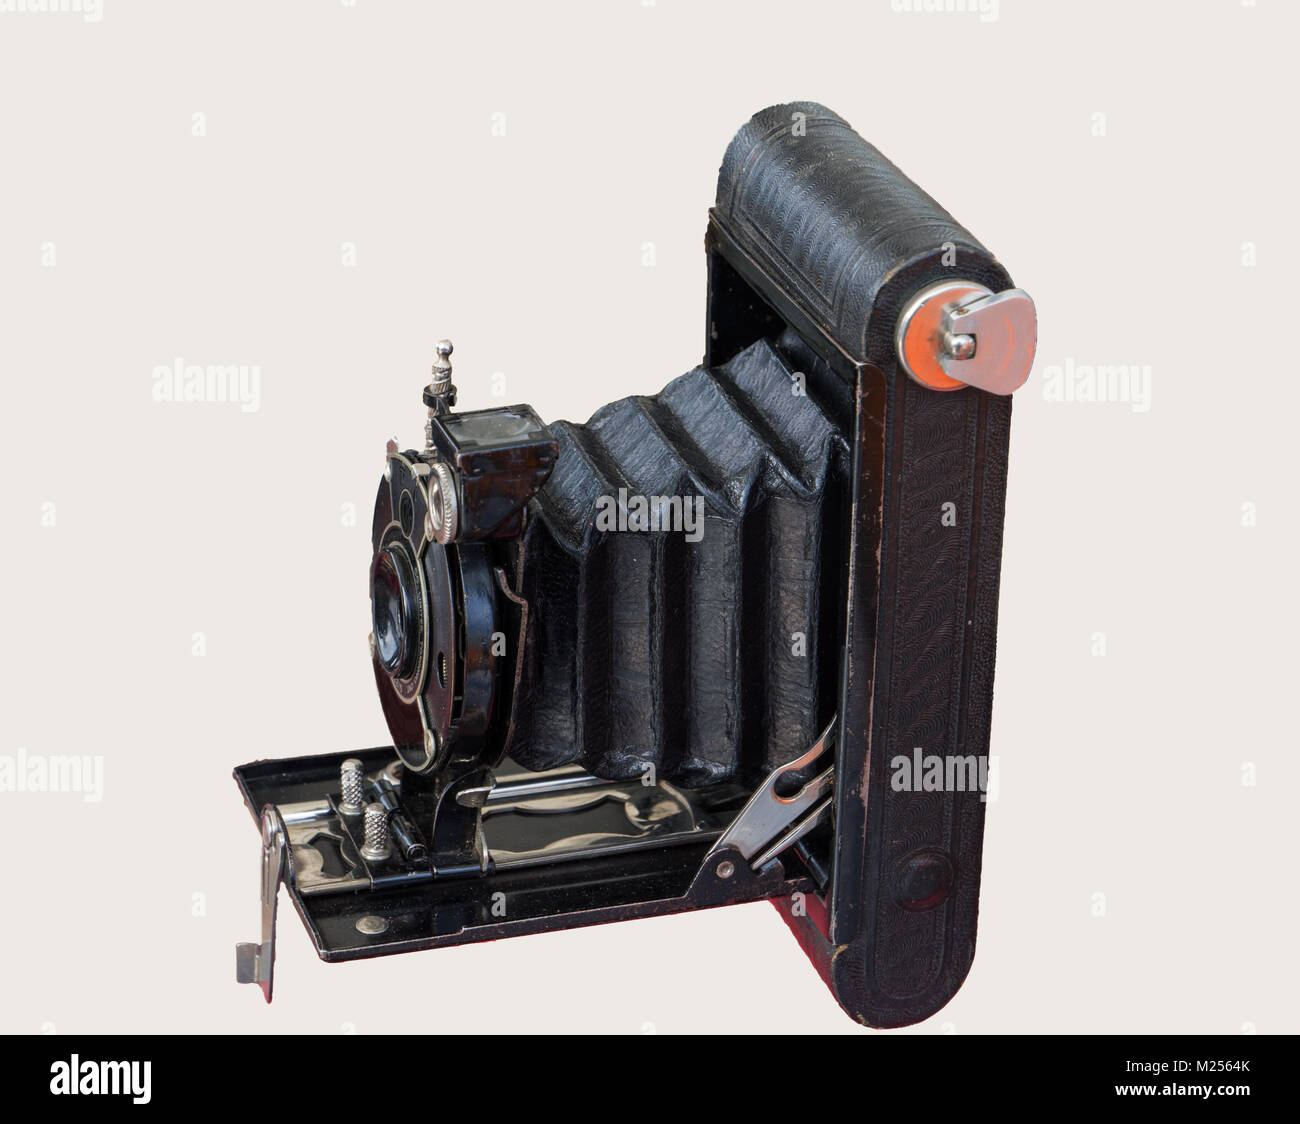 old bellows camera on a simple white background - Stock Image